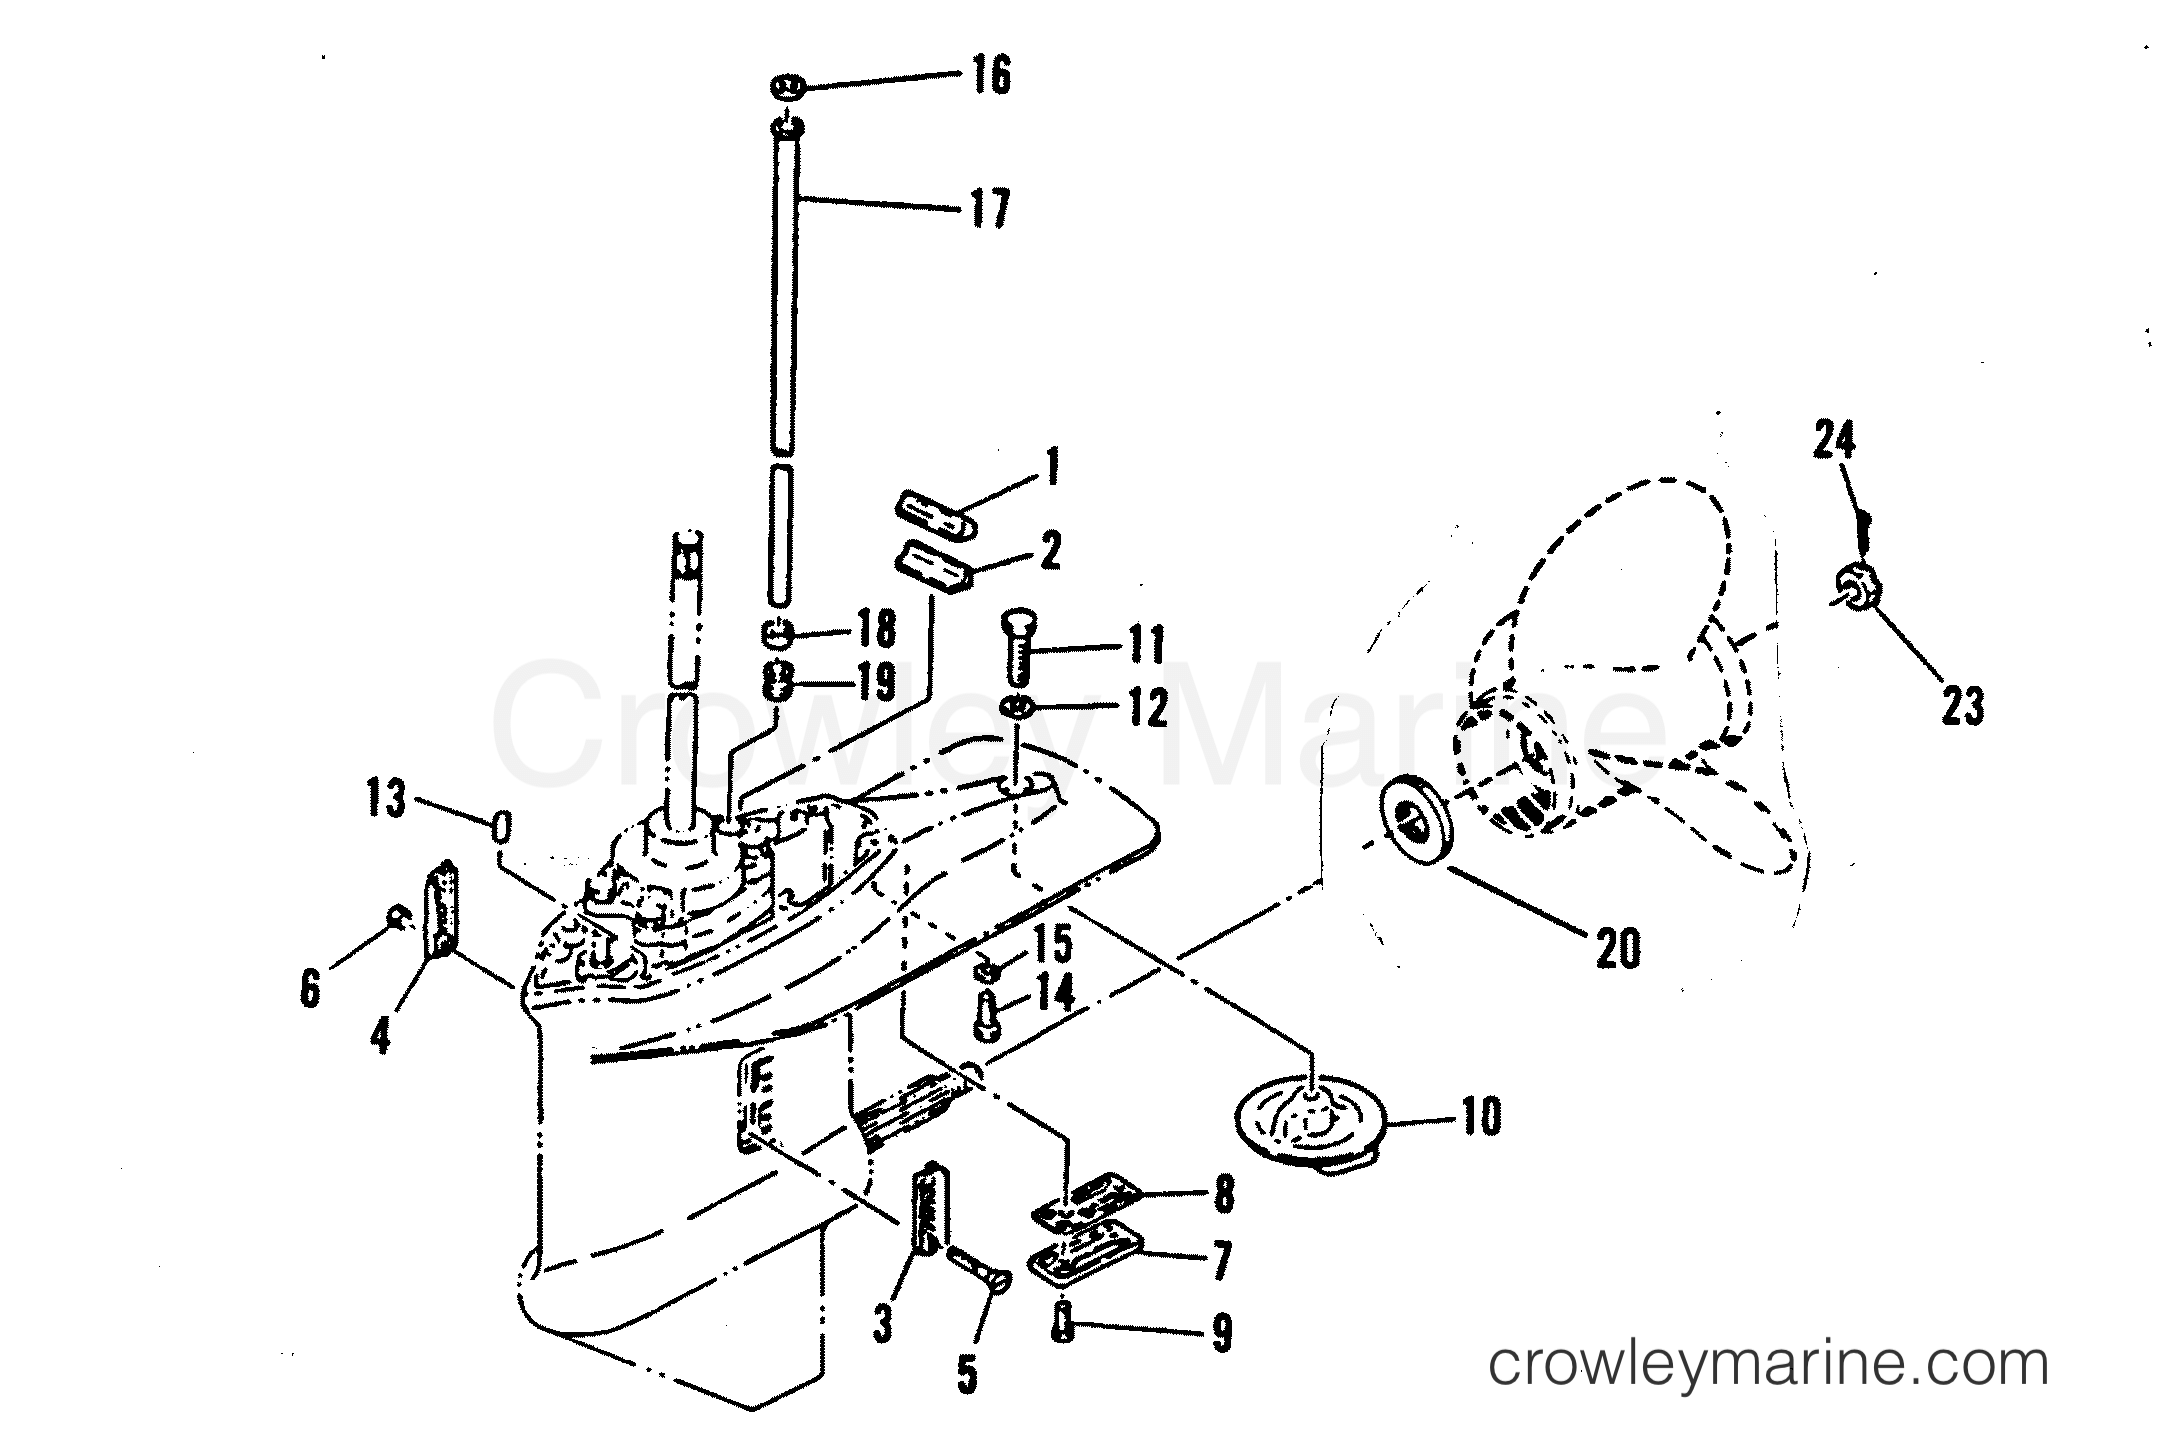 LOWER GEAR HOUSING ASSEMBLY